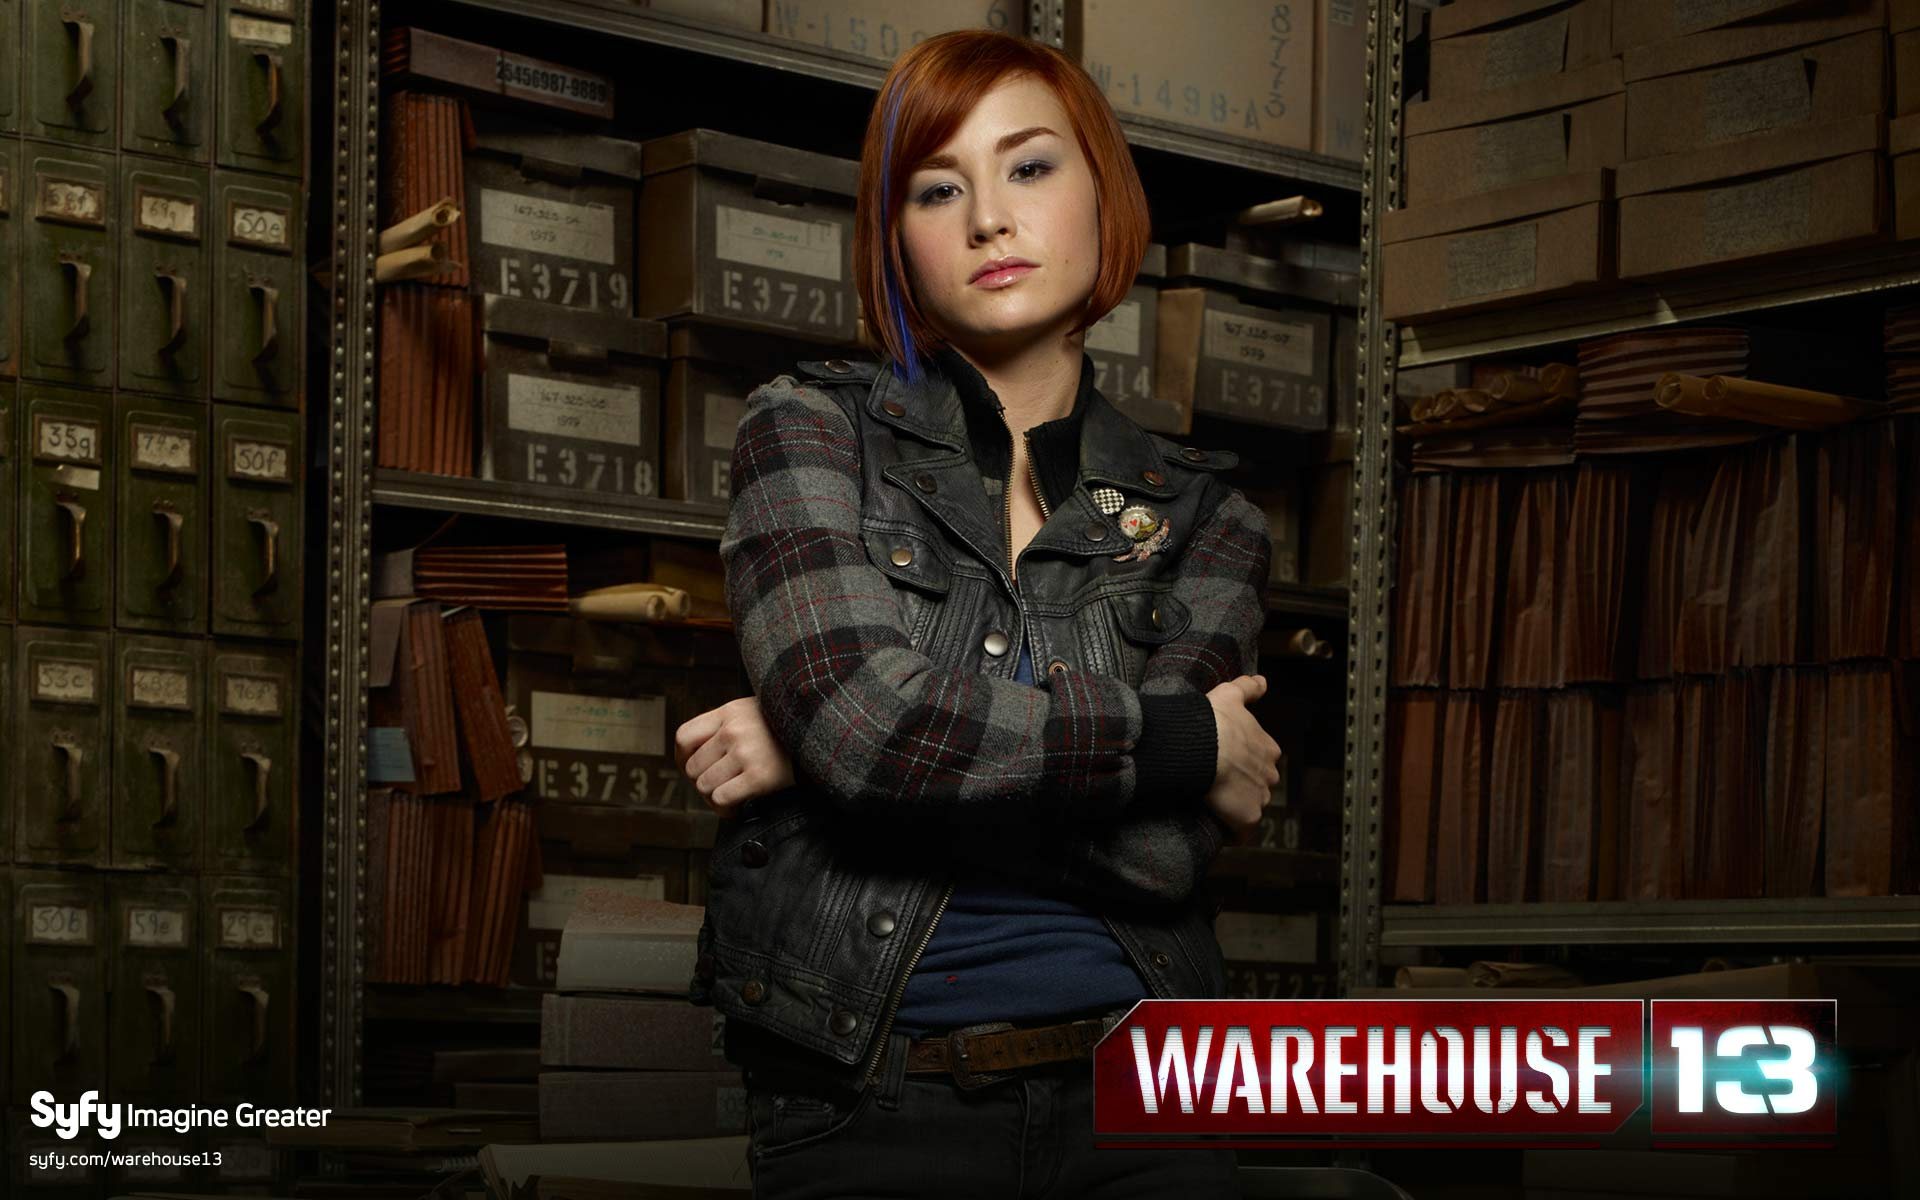 warehouse 13 desktop wallpaper crimson tear